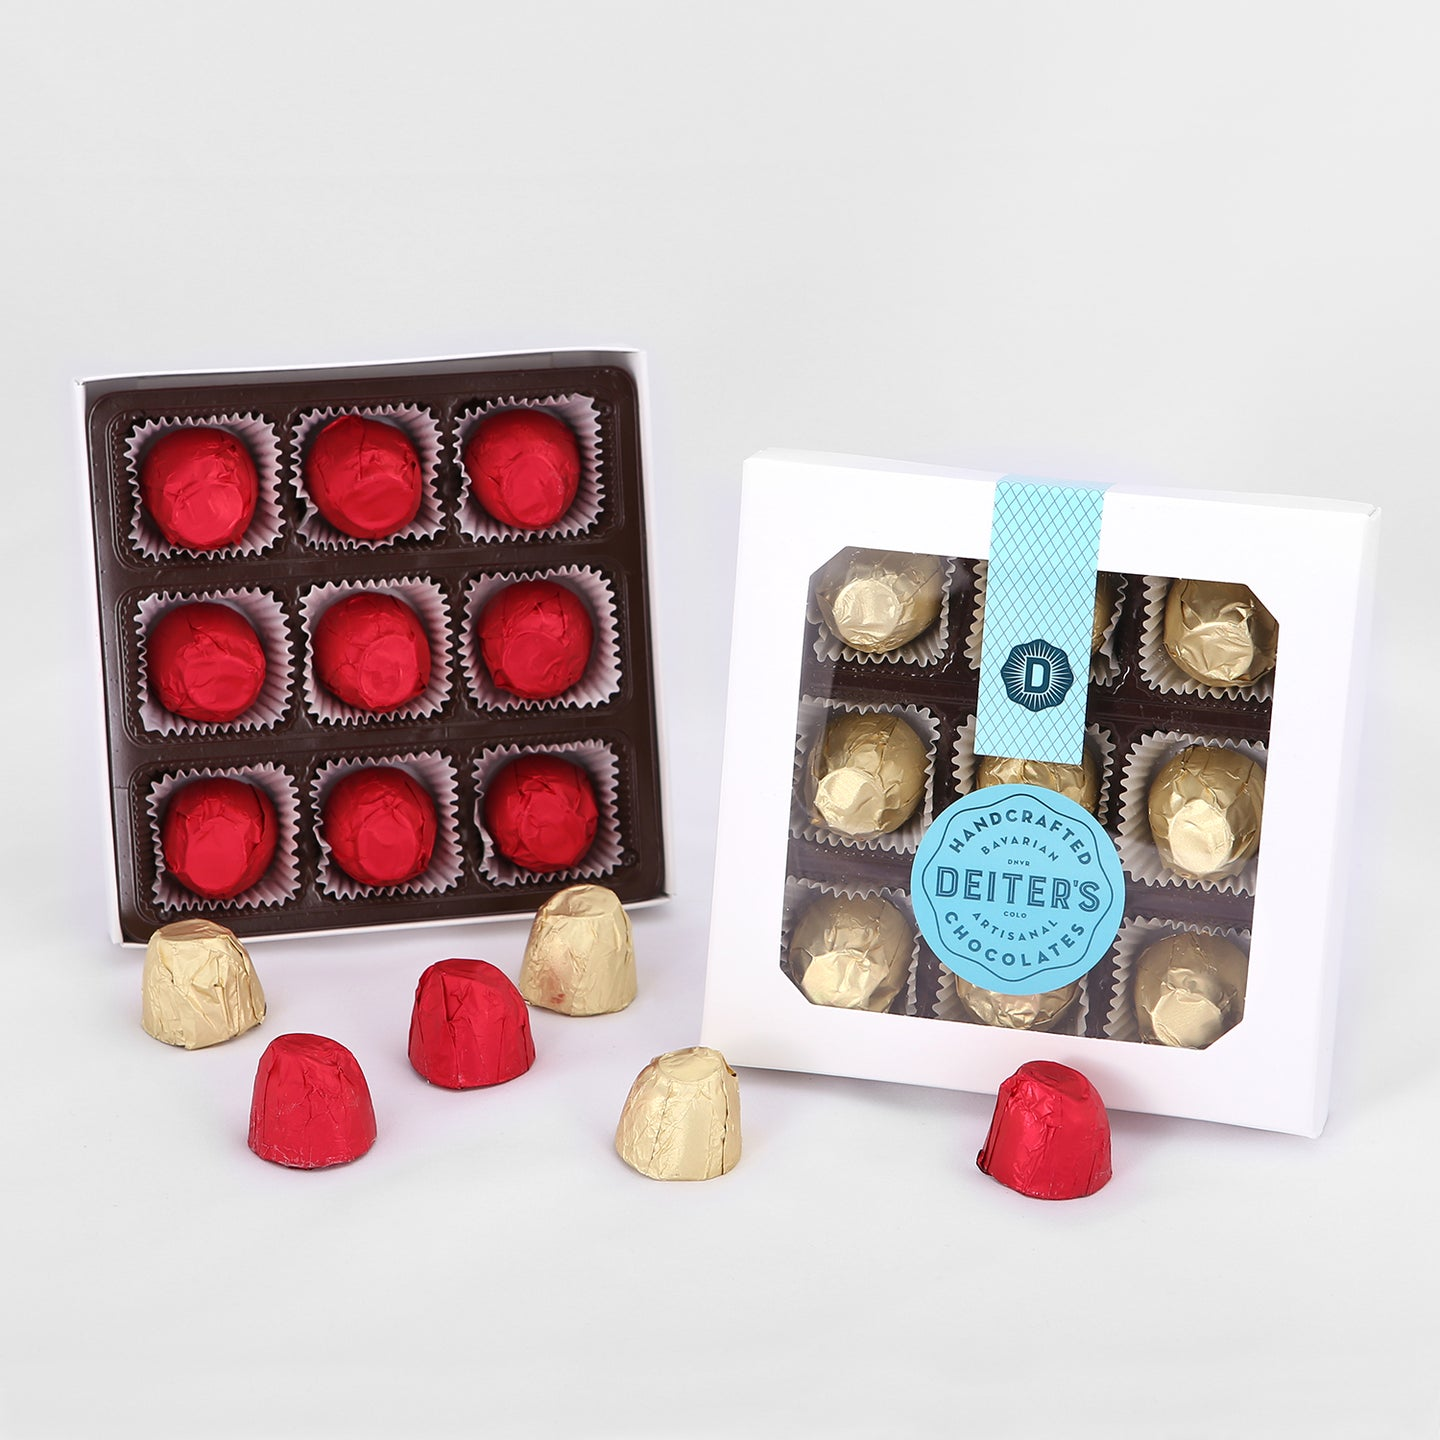 boxes of 9-piece foil-wrapped chocolate-covered cherries